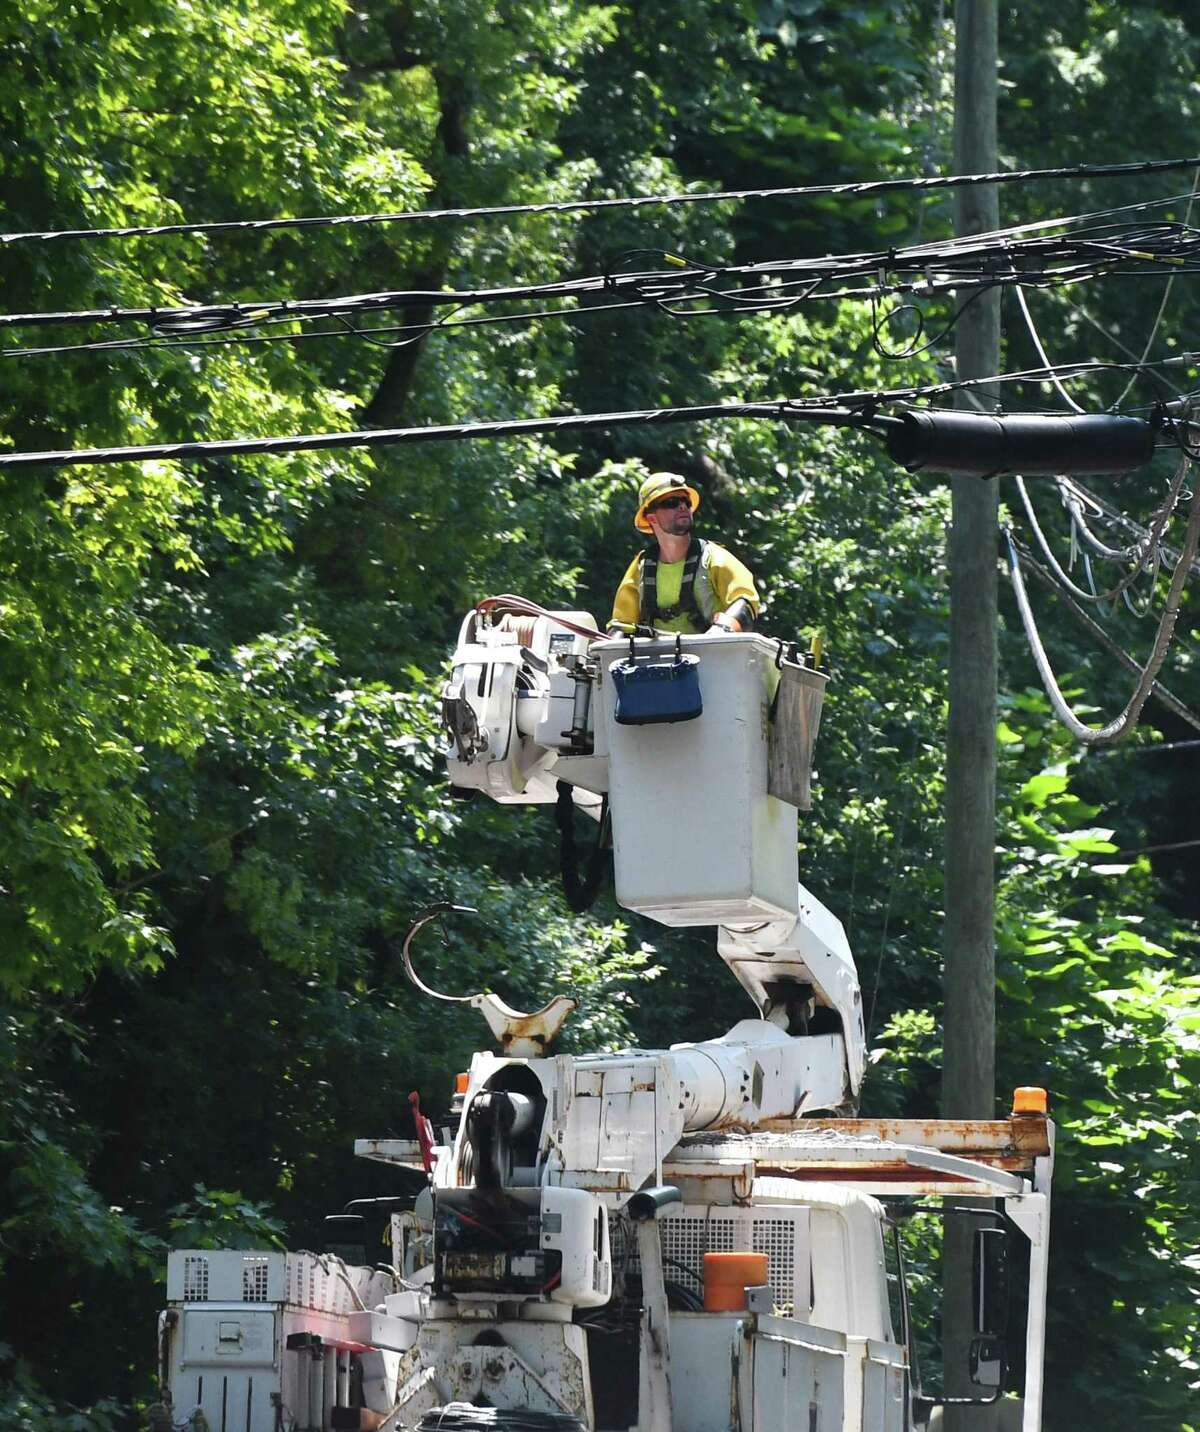 Eversource Energy crews repair power lines in the wake of Tropical Storm Isaias in Greenwich Aug. 10, 2020.